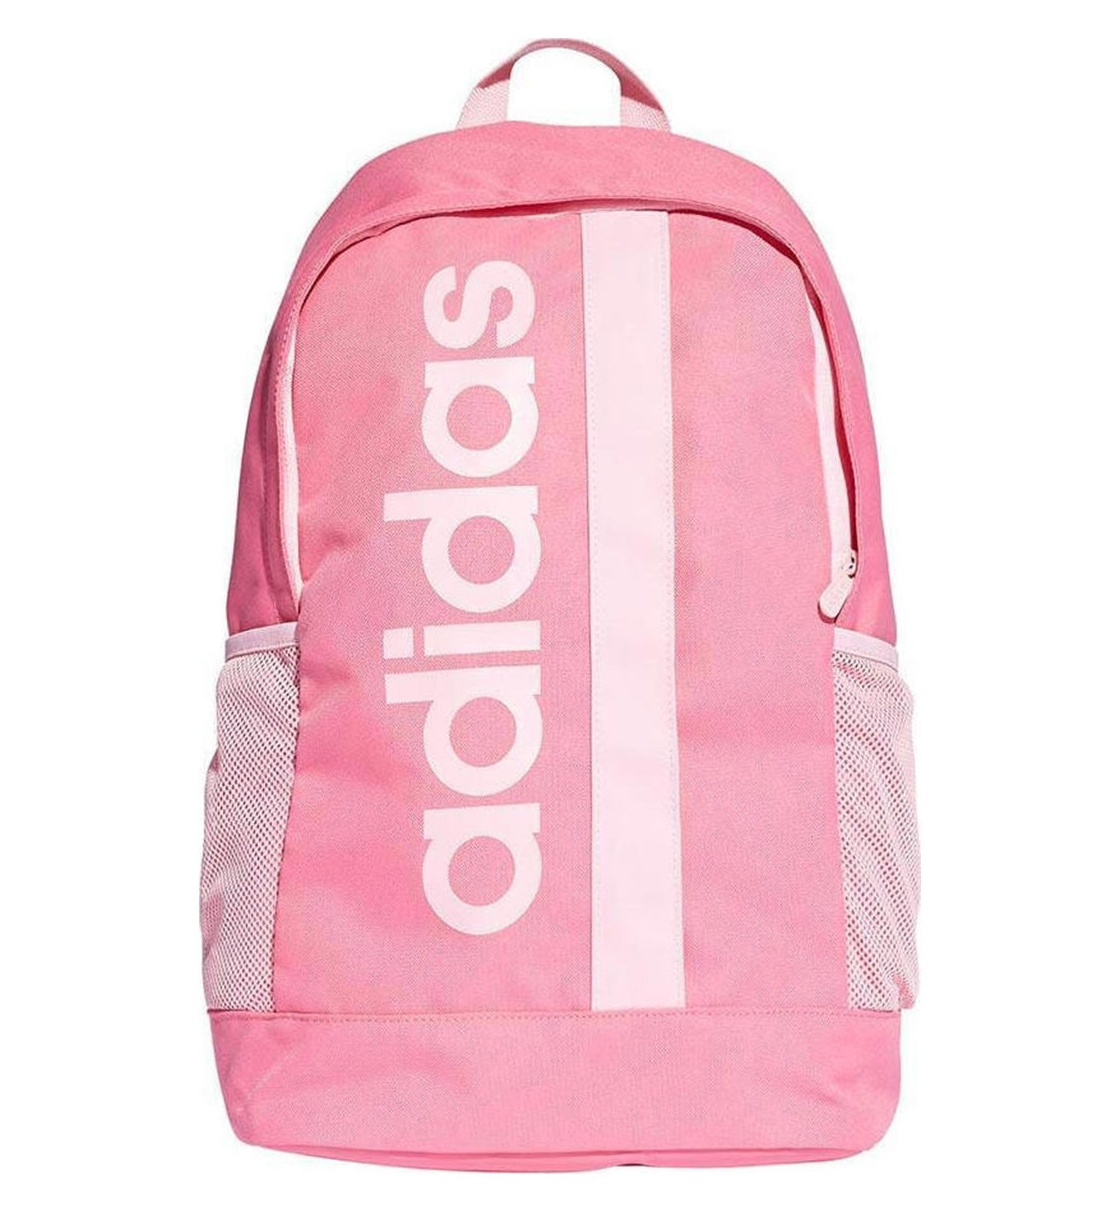 Adidas Fw19 Linear Core Backpack